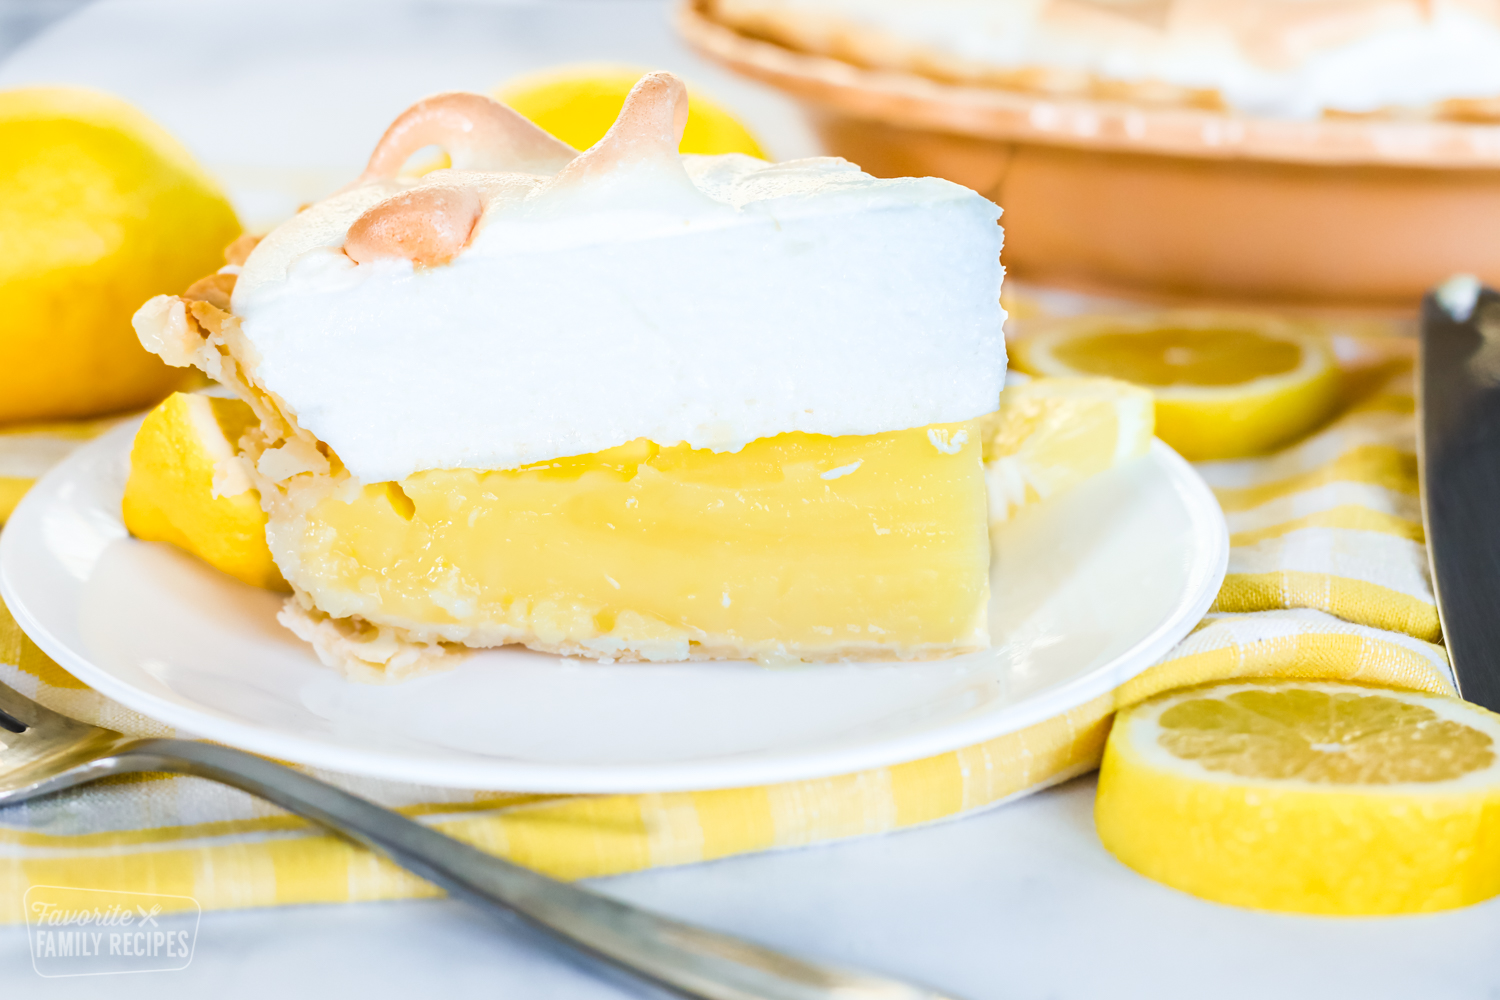 A direct side view of a slice of lemon meringue pie to show the lemon and meringue layers.